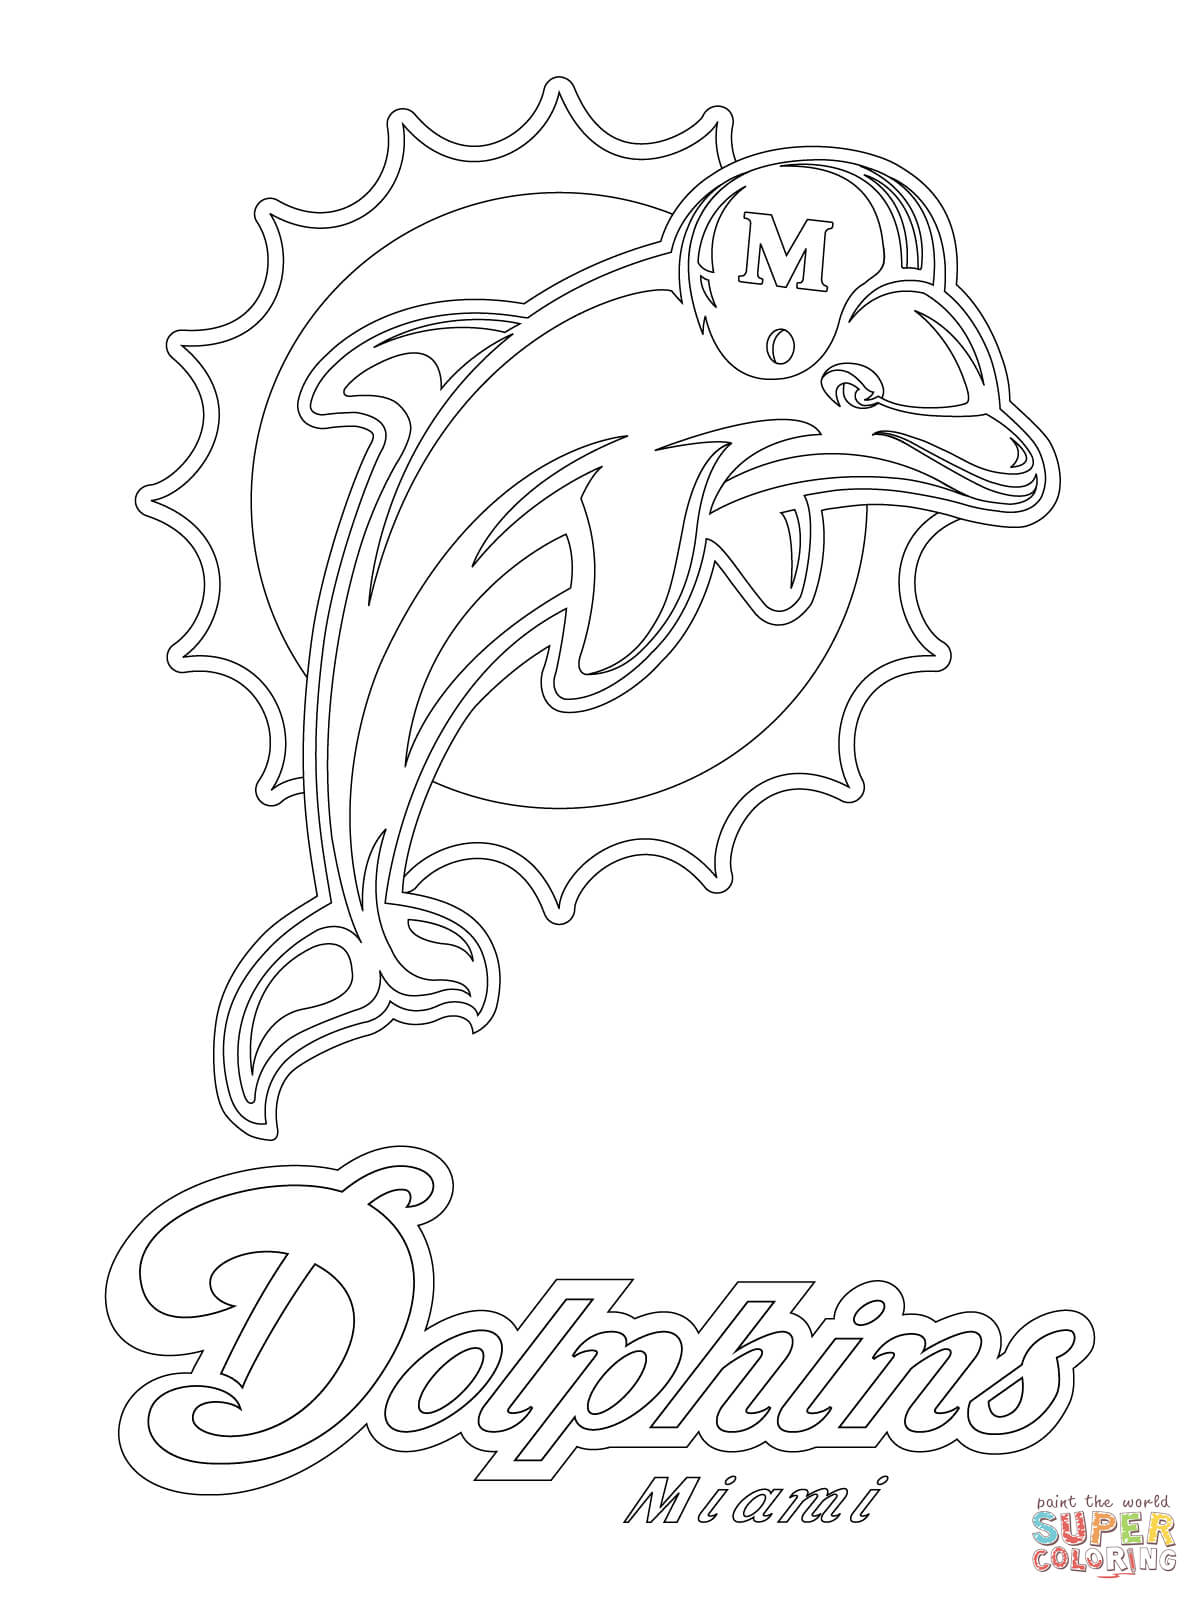 Taylor Swift Black And White Coloring Pages at